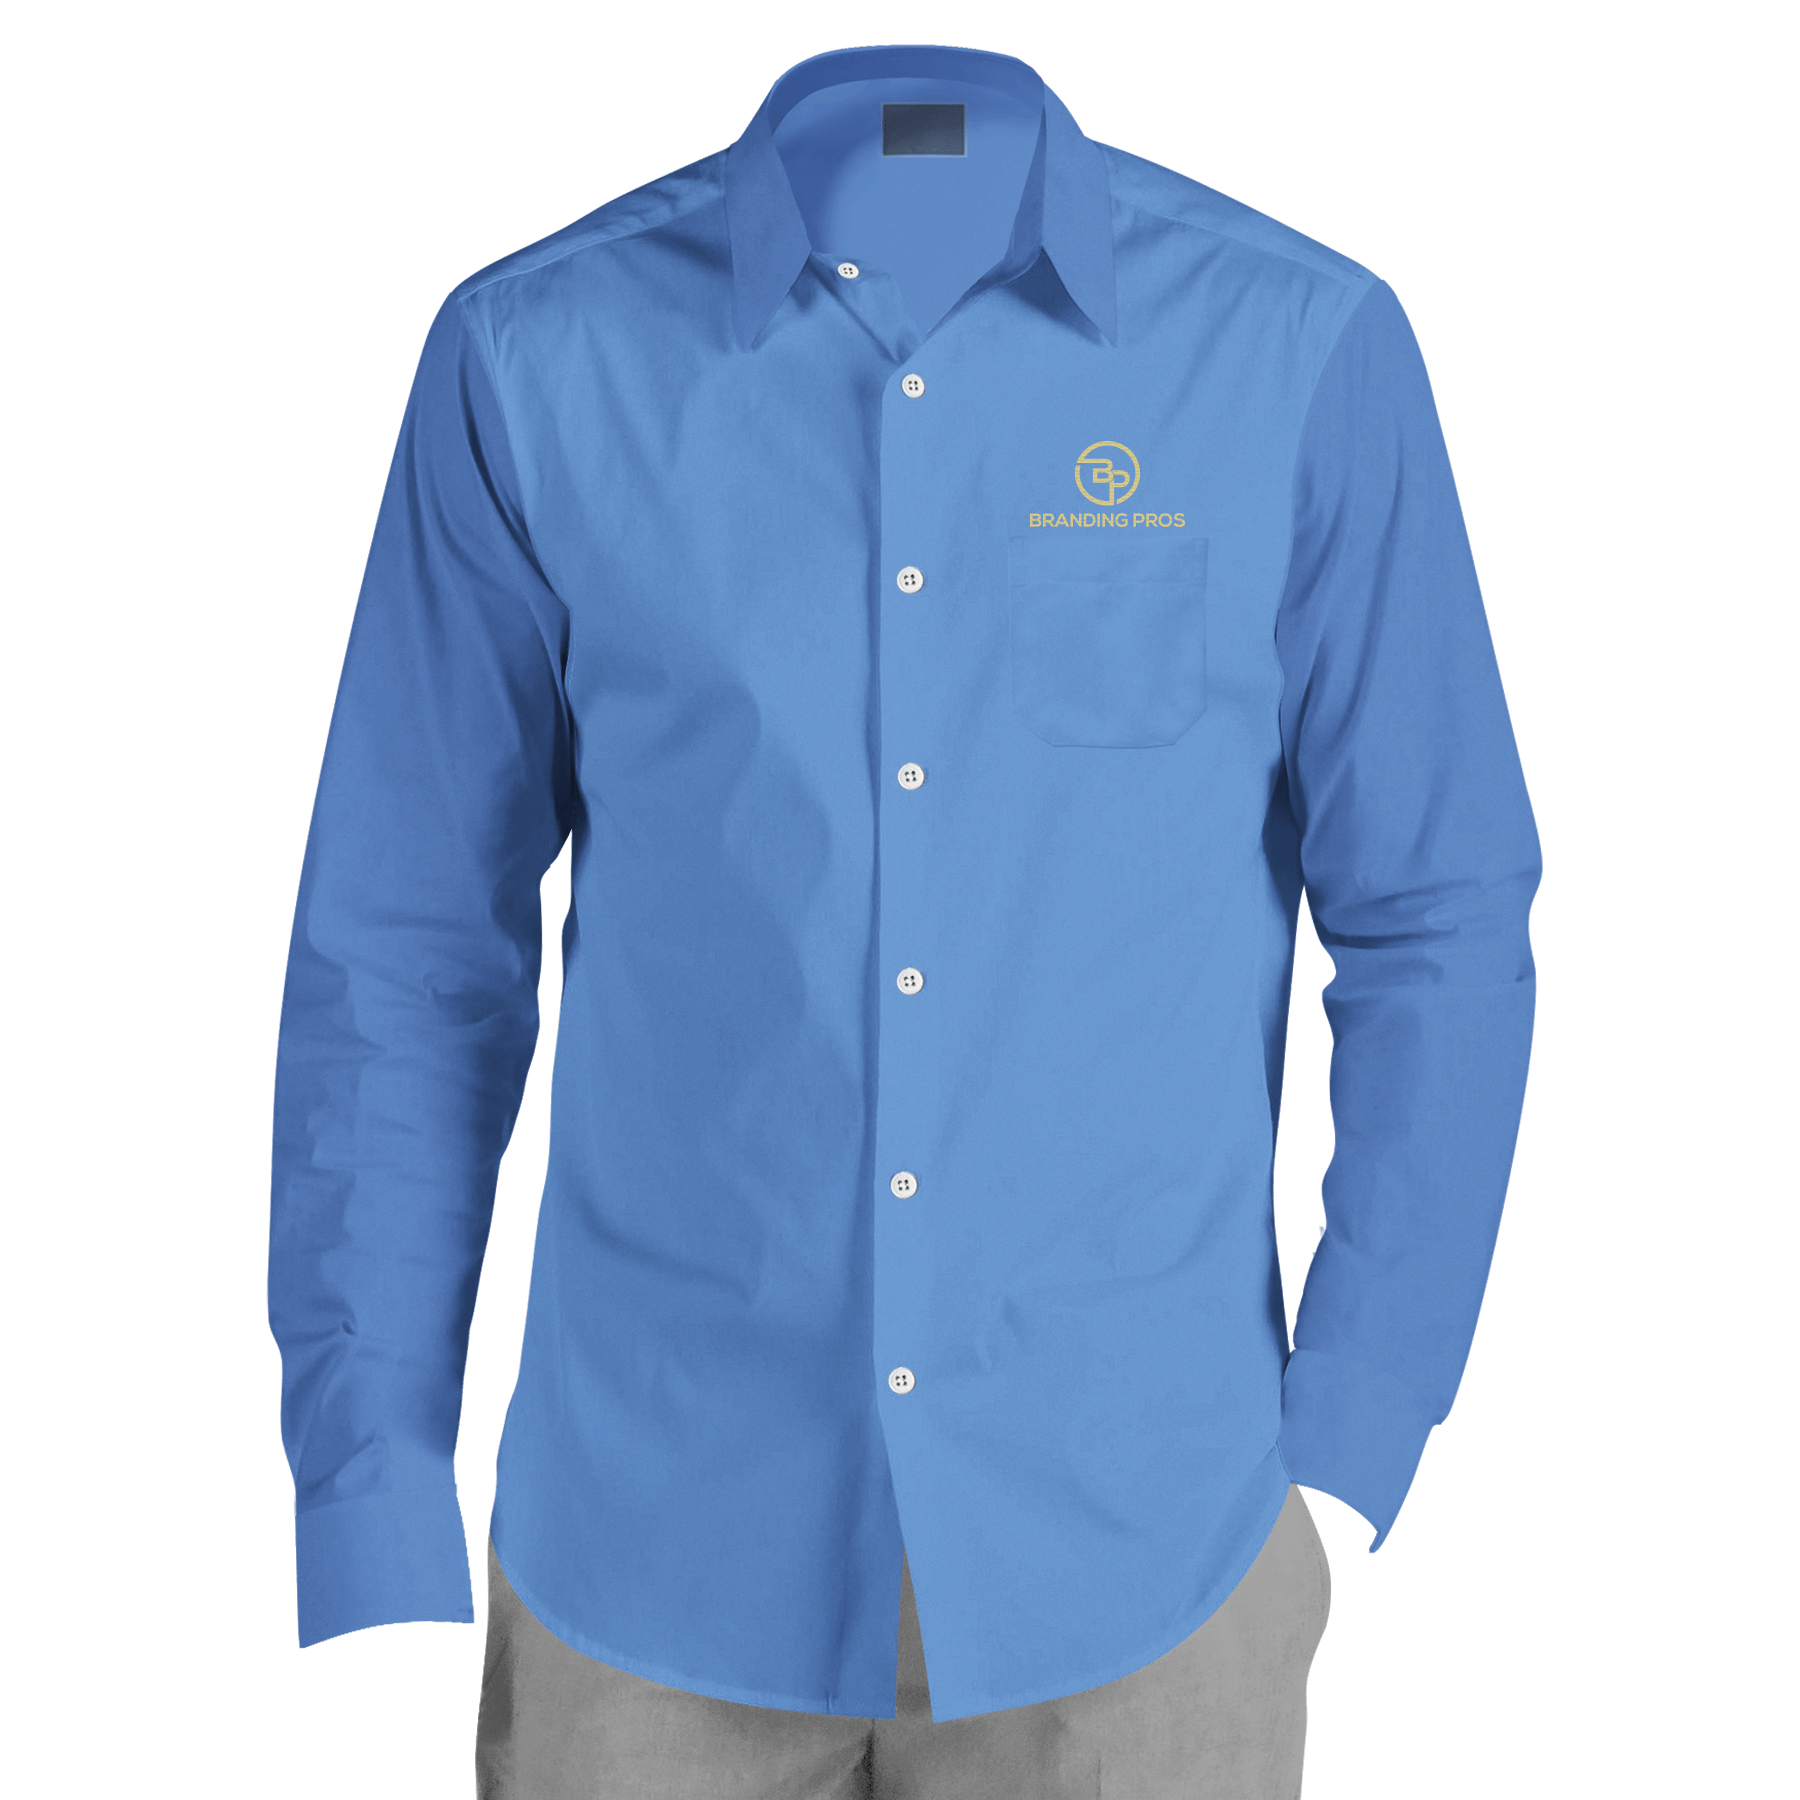 dress shirt with logo - Corporate Apparel